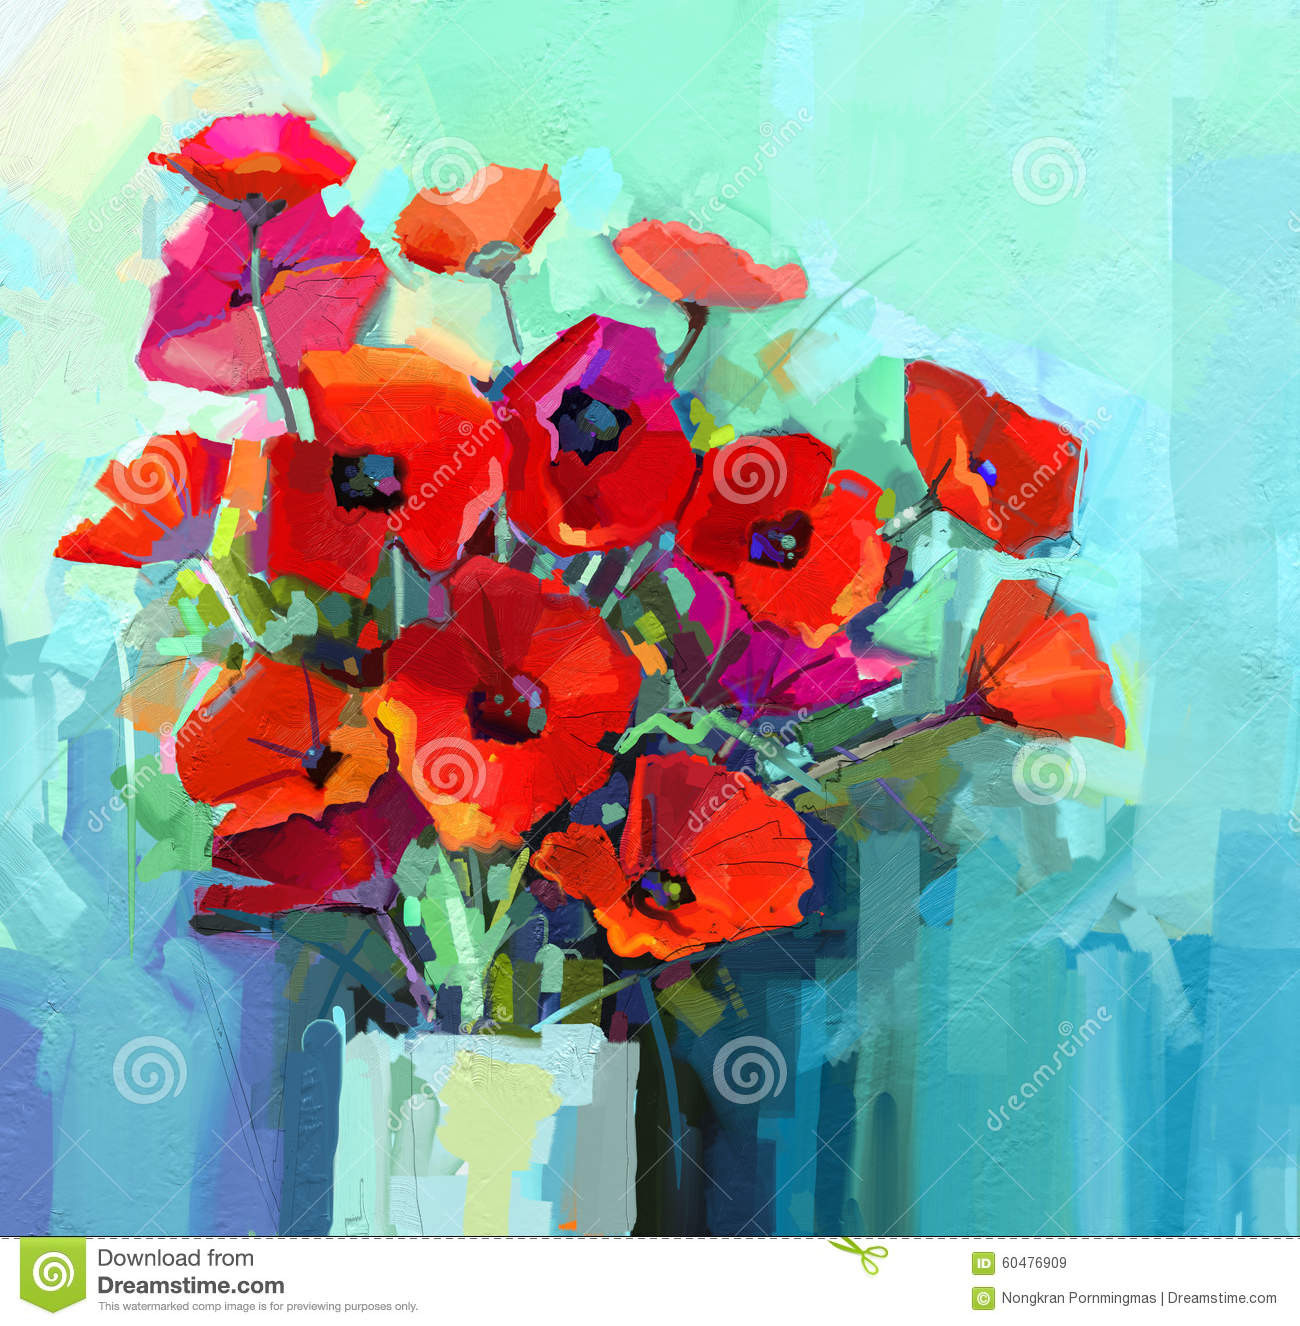 blue vase flowers painting of oil painting poppy stock illustration illustration of flower 7915653 regarding oil painting still life of red and pink color flower colorful bouquet of poppy